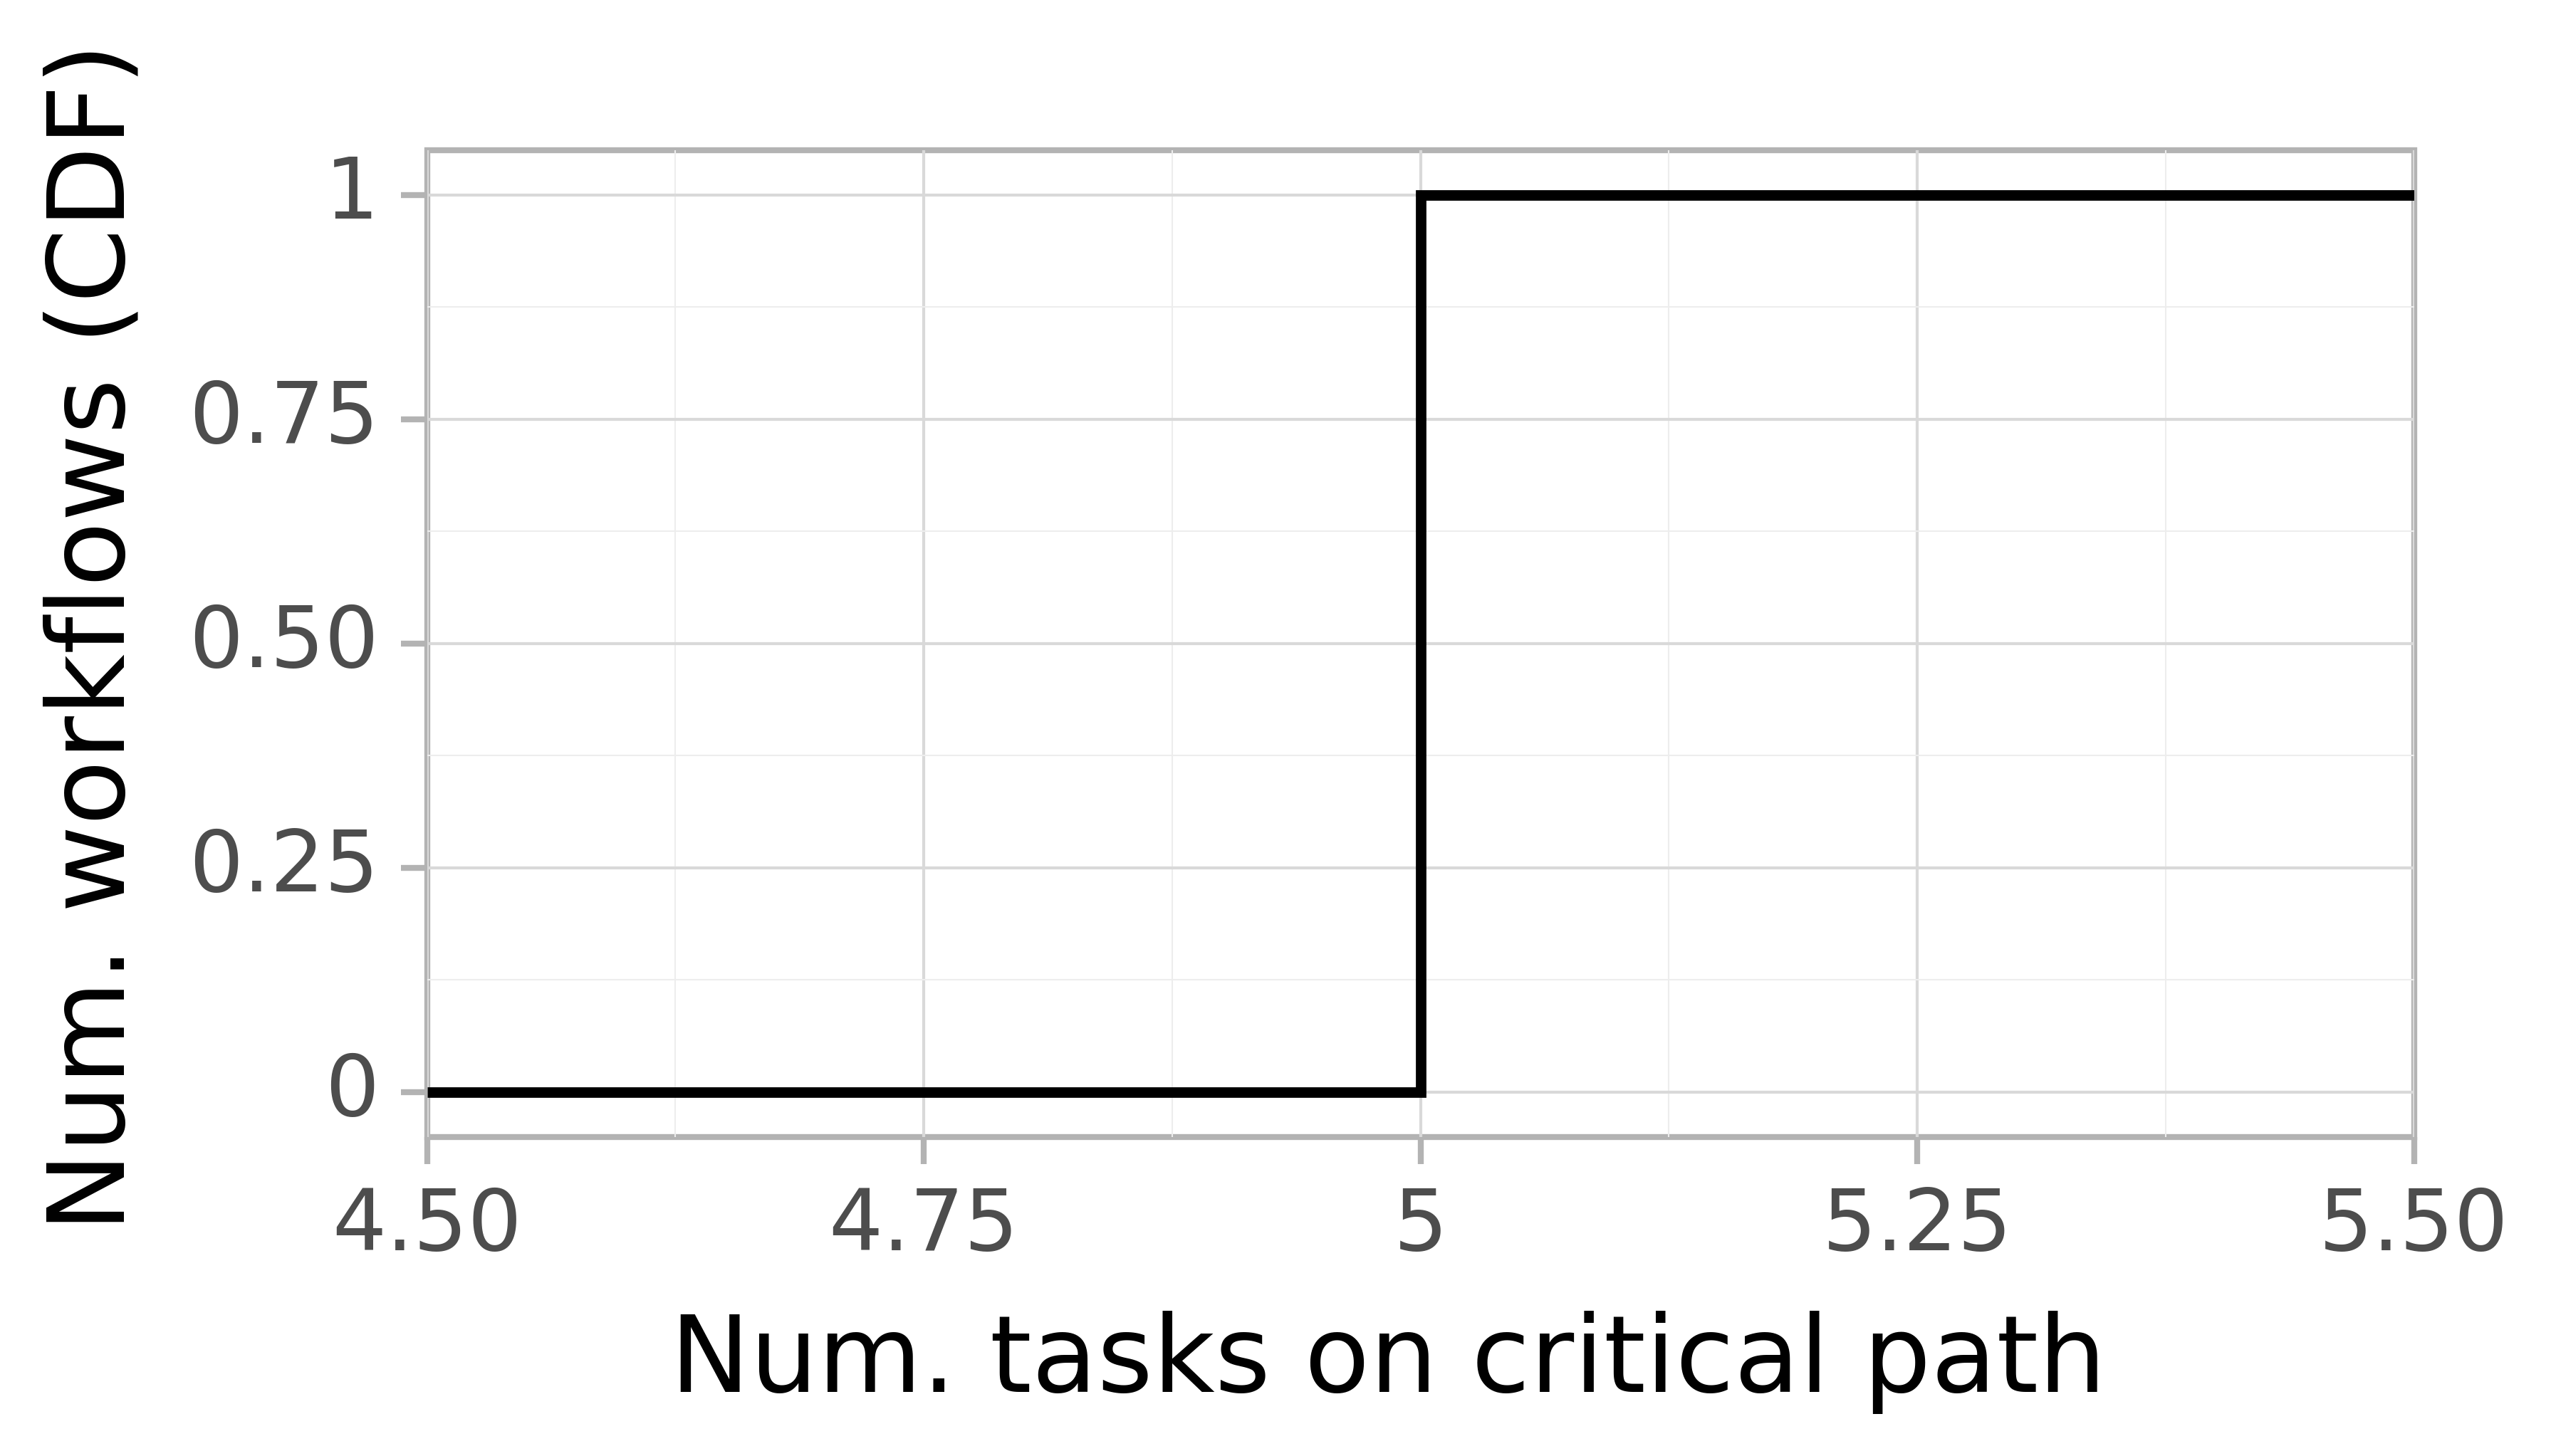 Job critical path task count graph for the askalon-new_ee52 trace.